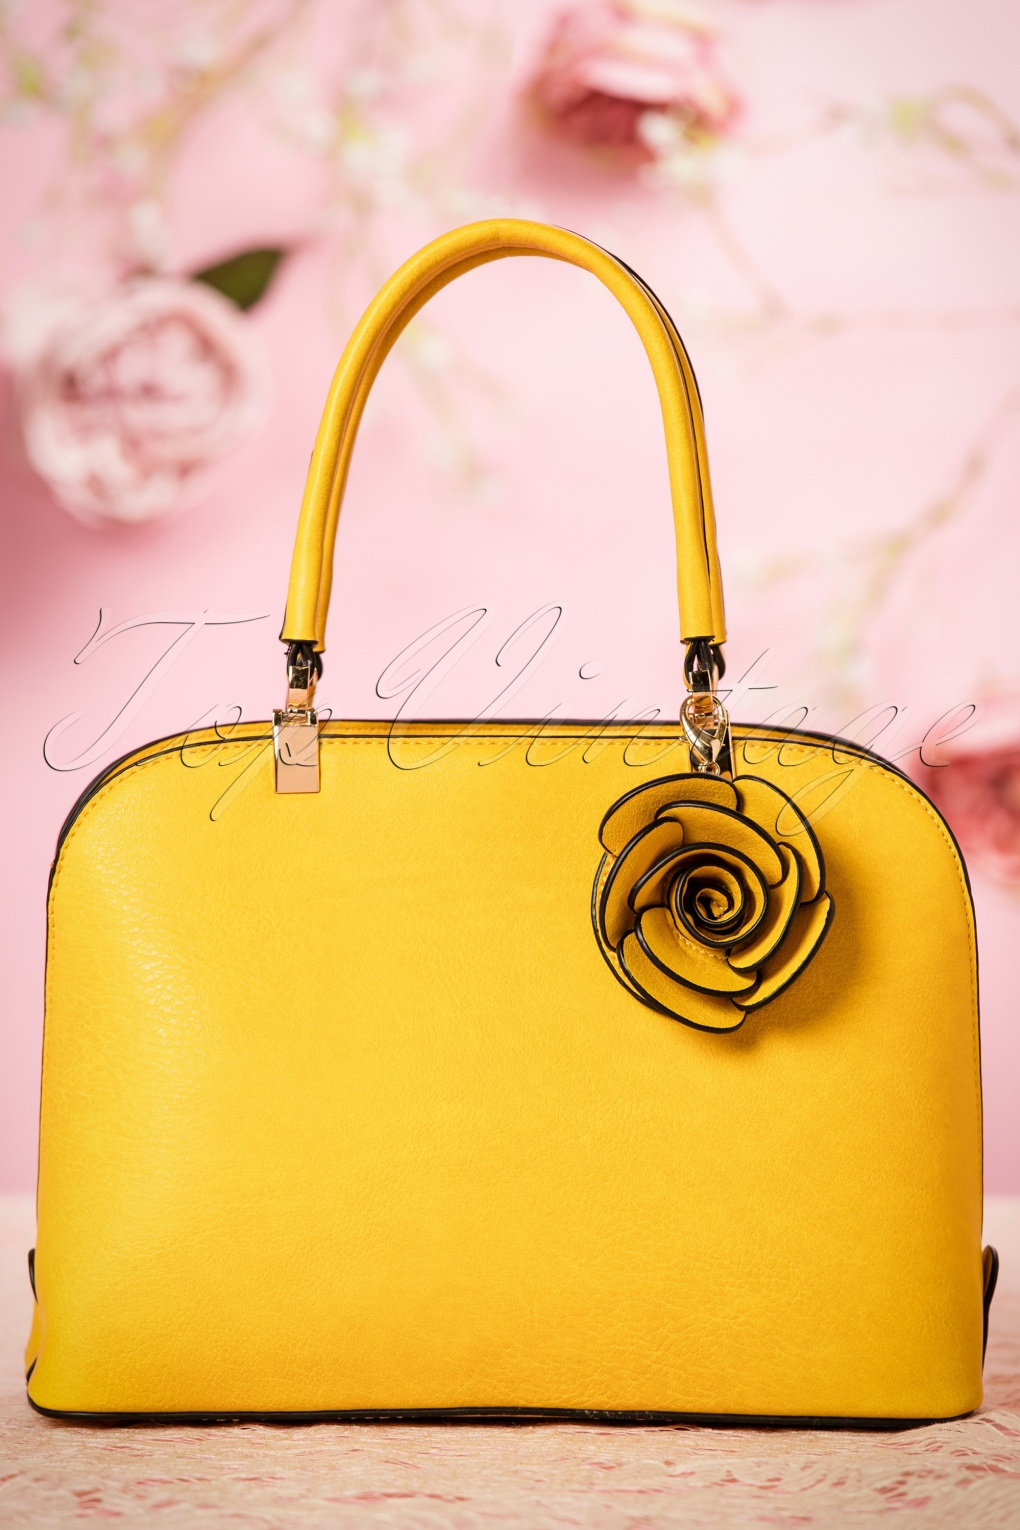 1950s Handbags, Purses, and Evening Bag Styles 50s Loretta Rose Handbag in Yellow £42.64 AT vintagedancer.com